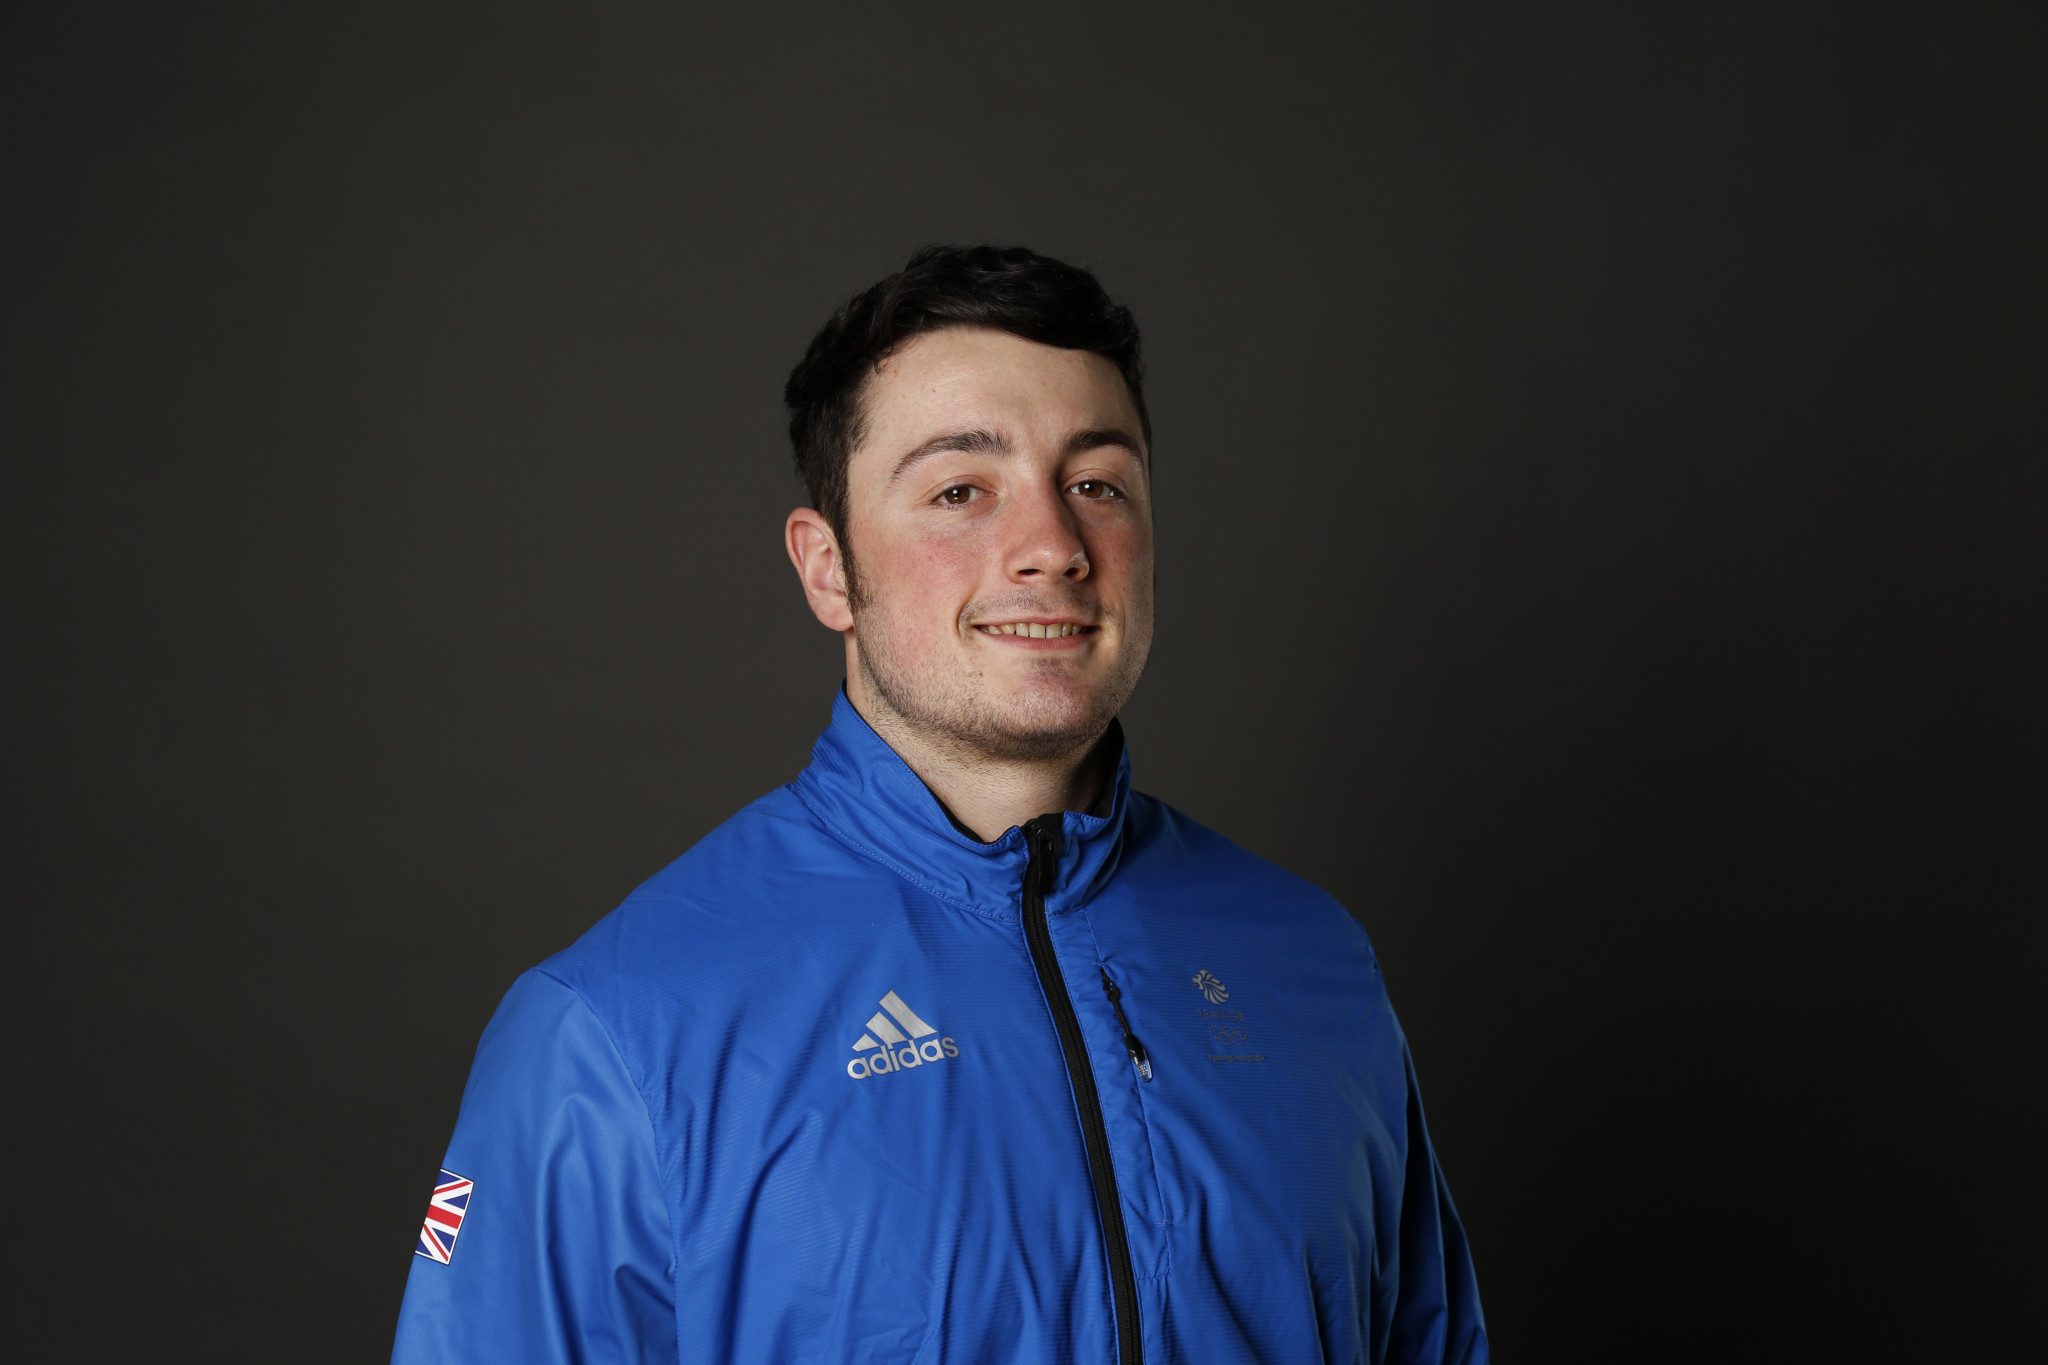 Nick Gleeson has been elected as a British bobsleigh athlete representative, which he said